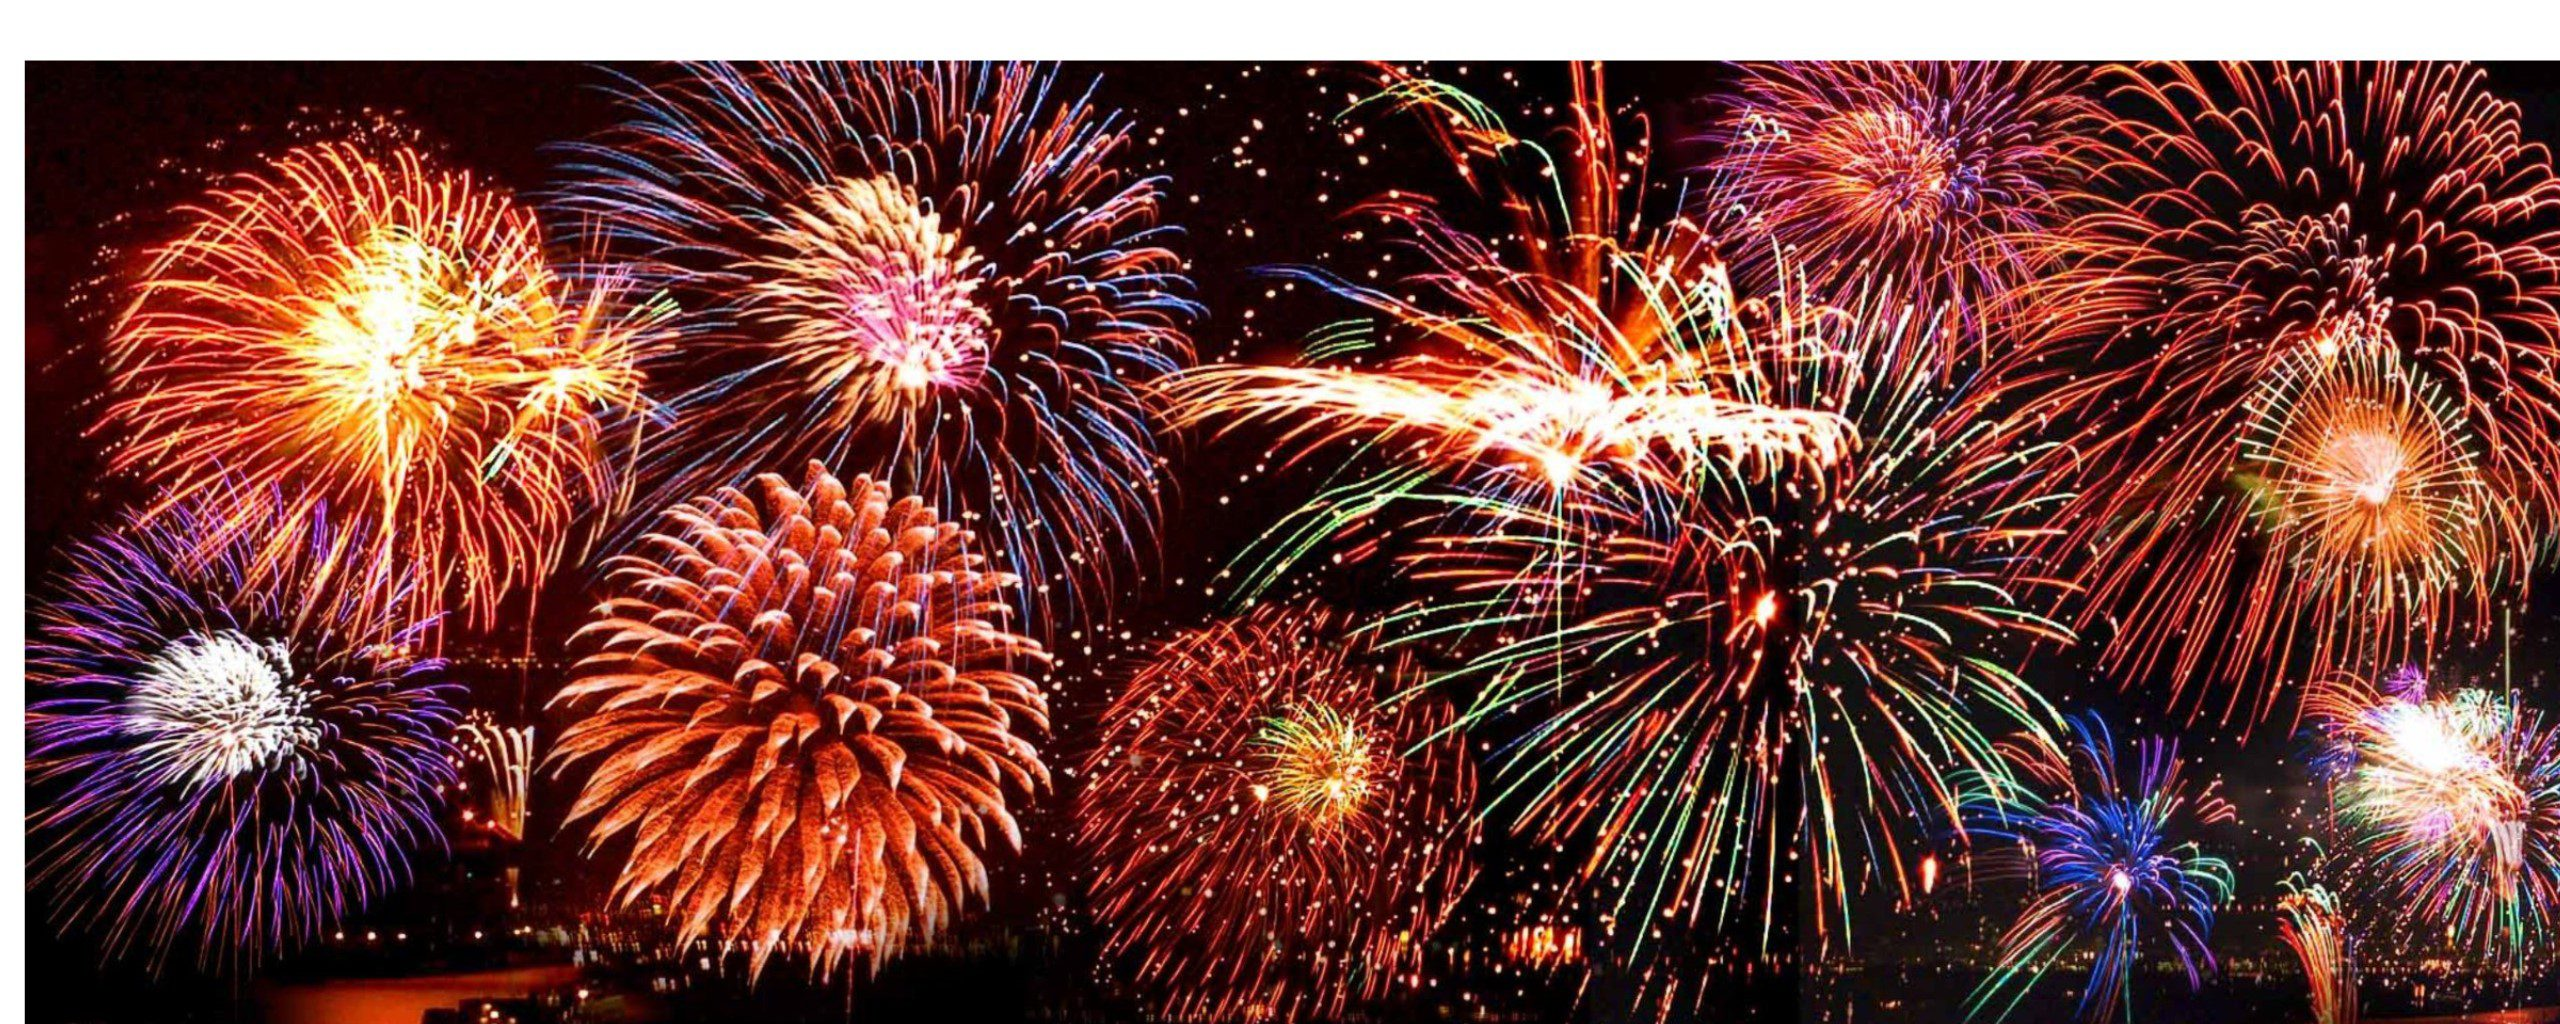 FLORENCE CHAMBER PRESENTS OLD FASHIONED 4TH OF JULY